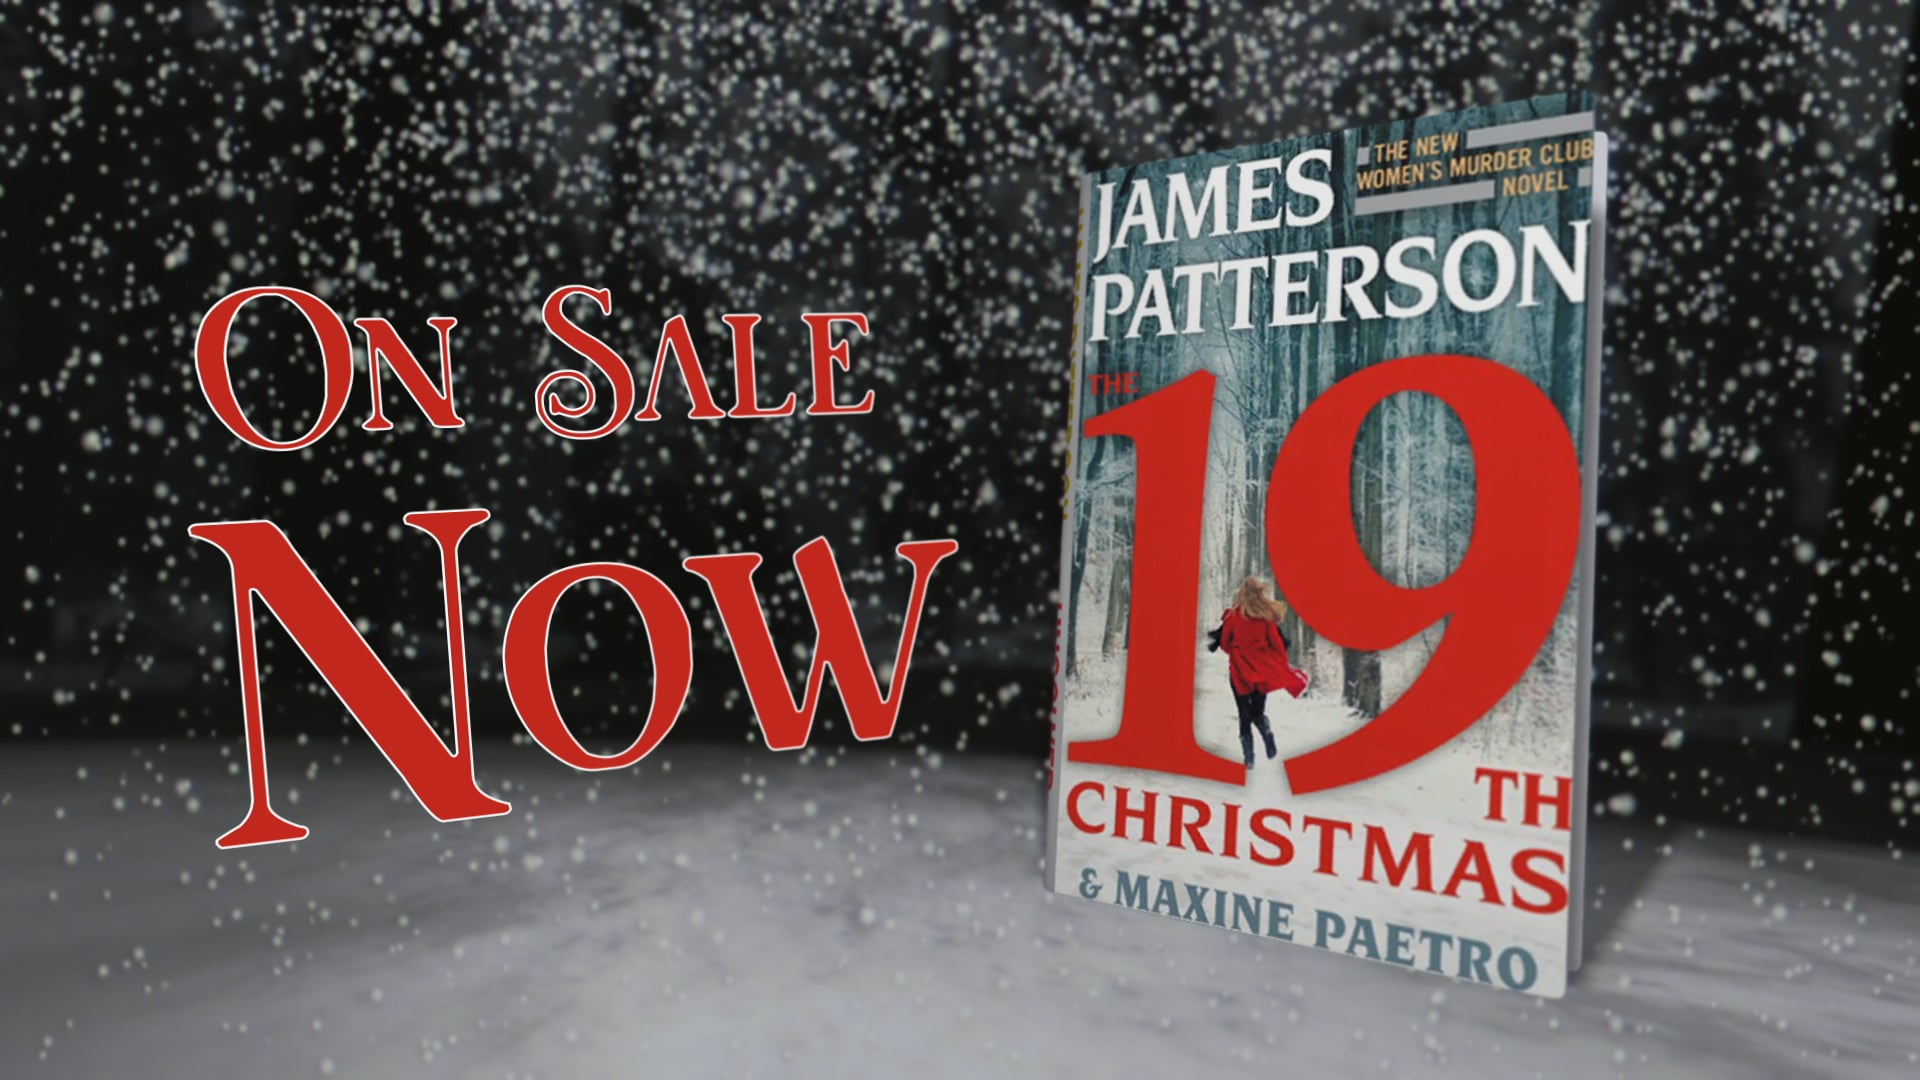 Promotional artwork for James Patterson's 19th Christmas